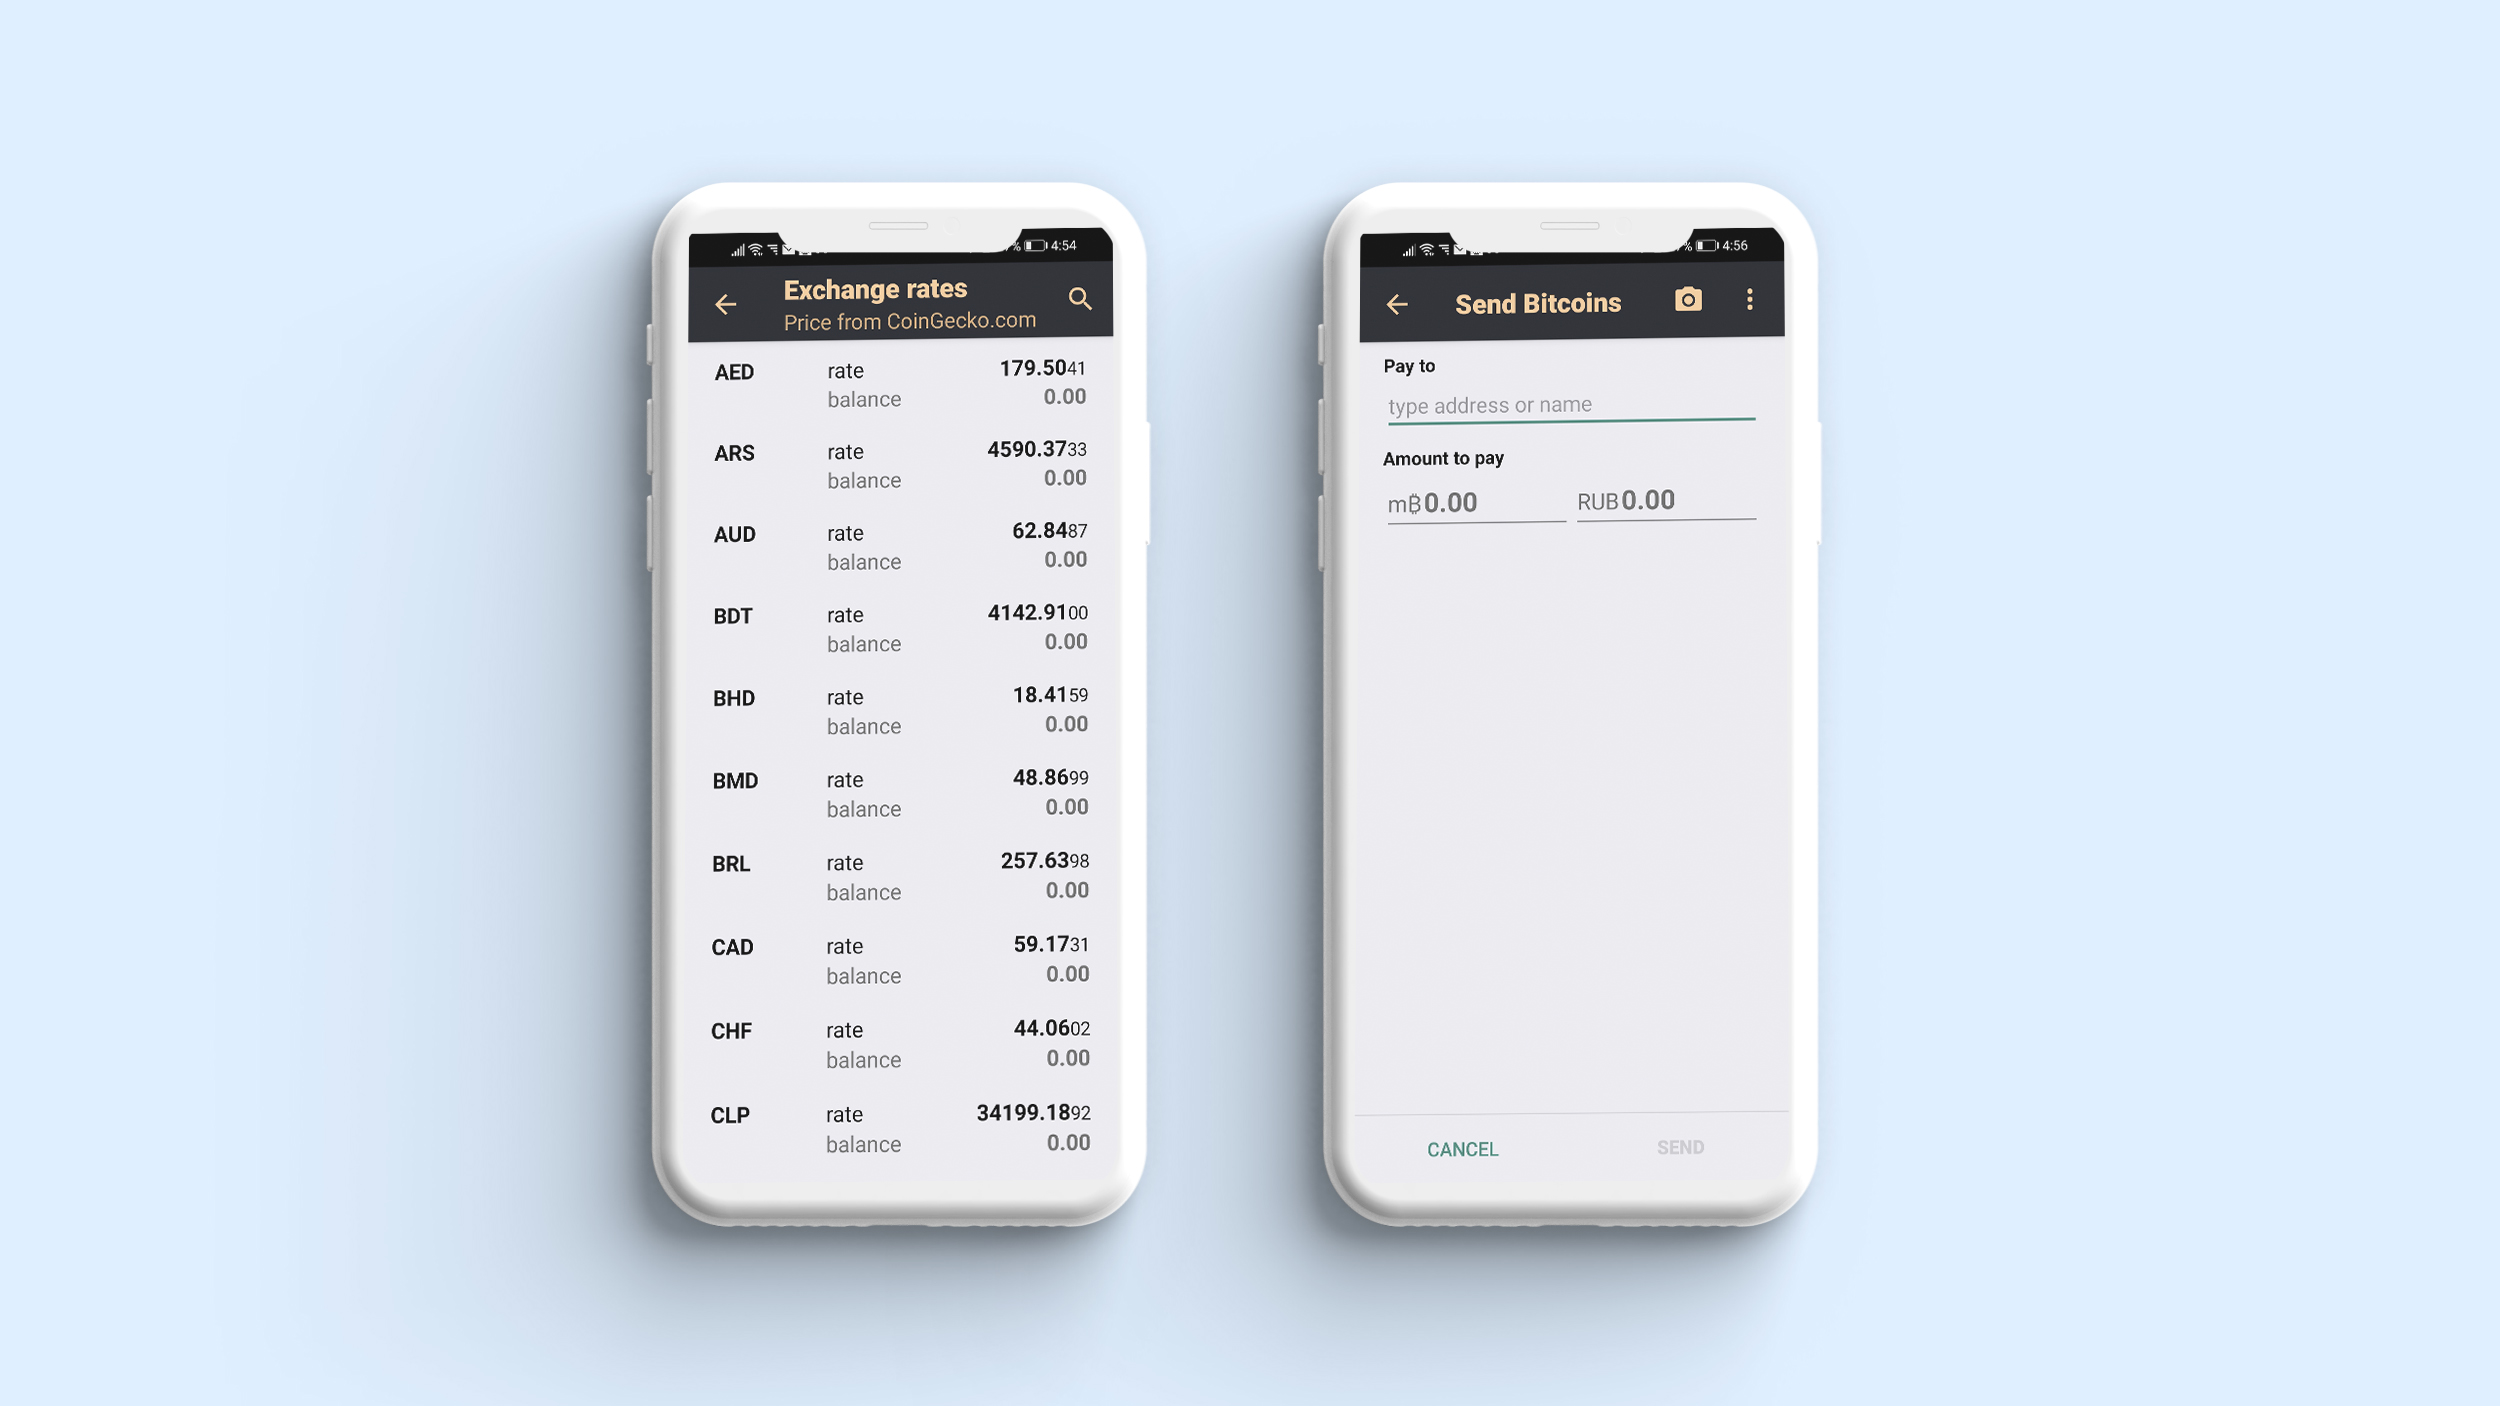 Conversion rate in crypto wallet app